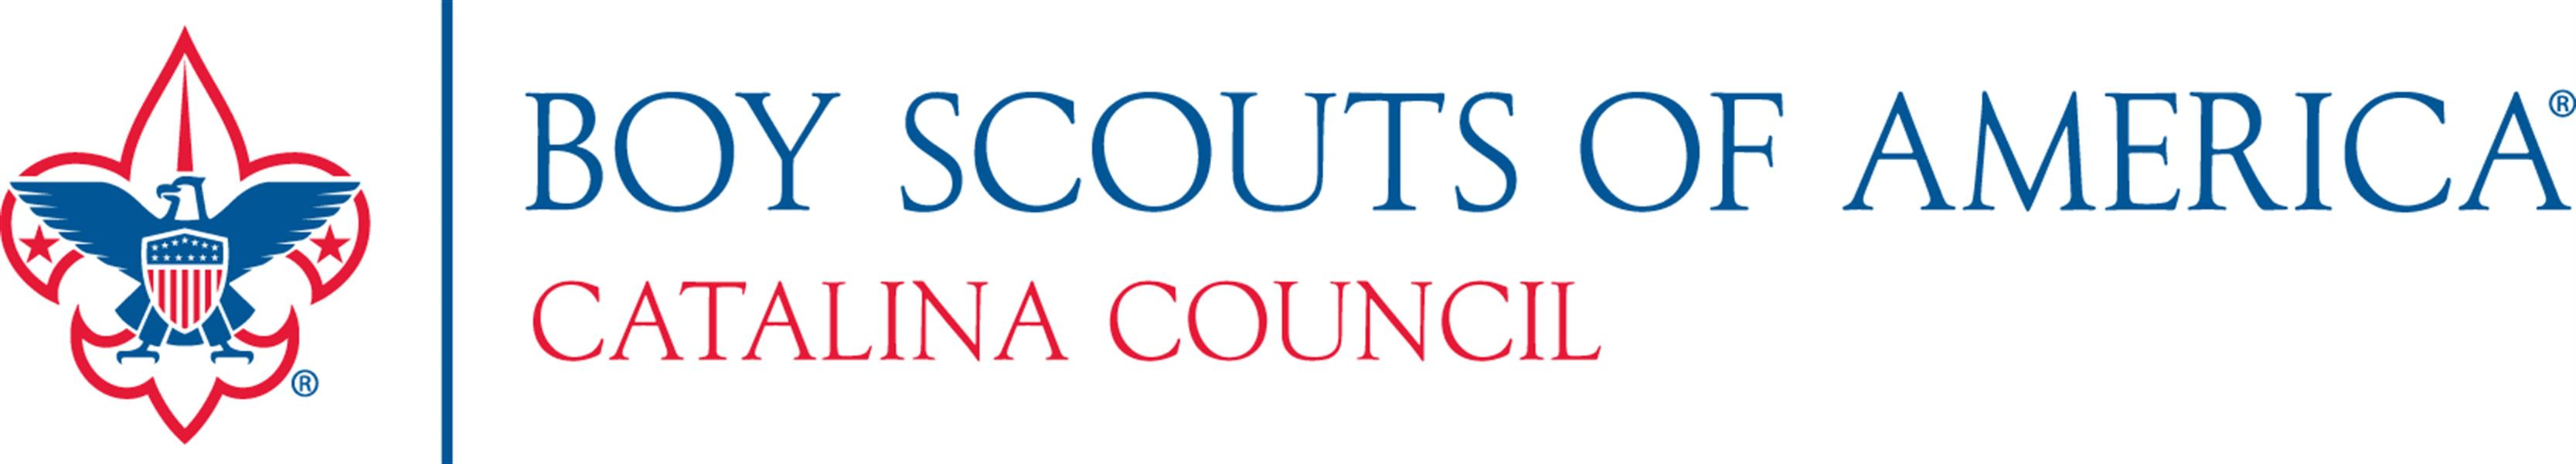 Boy Scouts of America - Cochise District